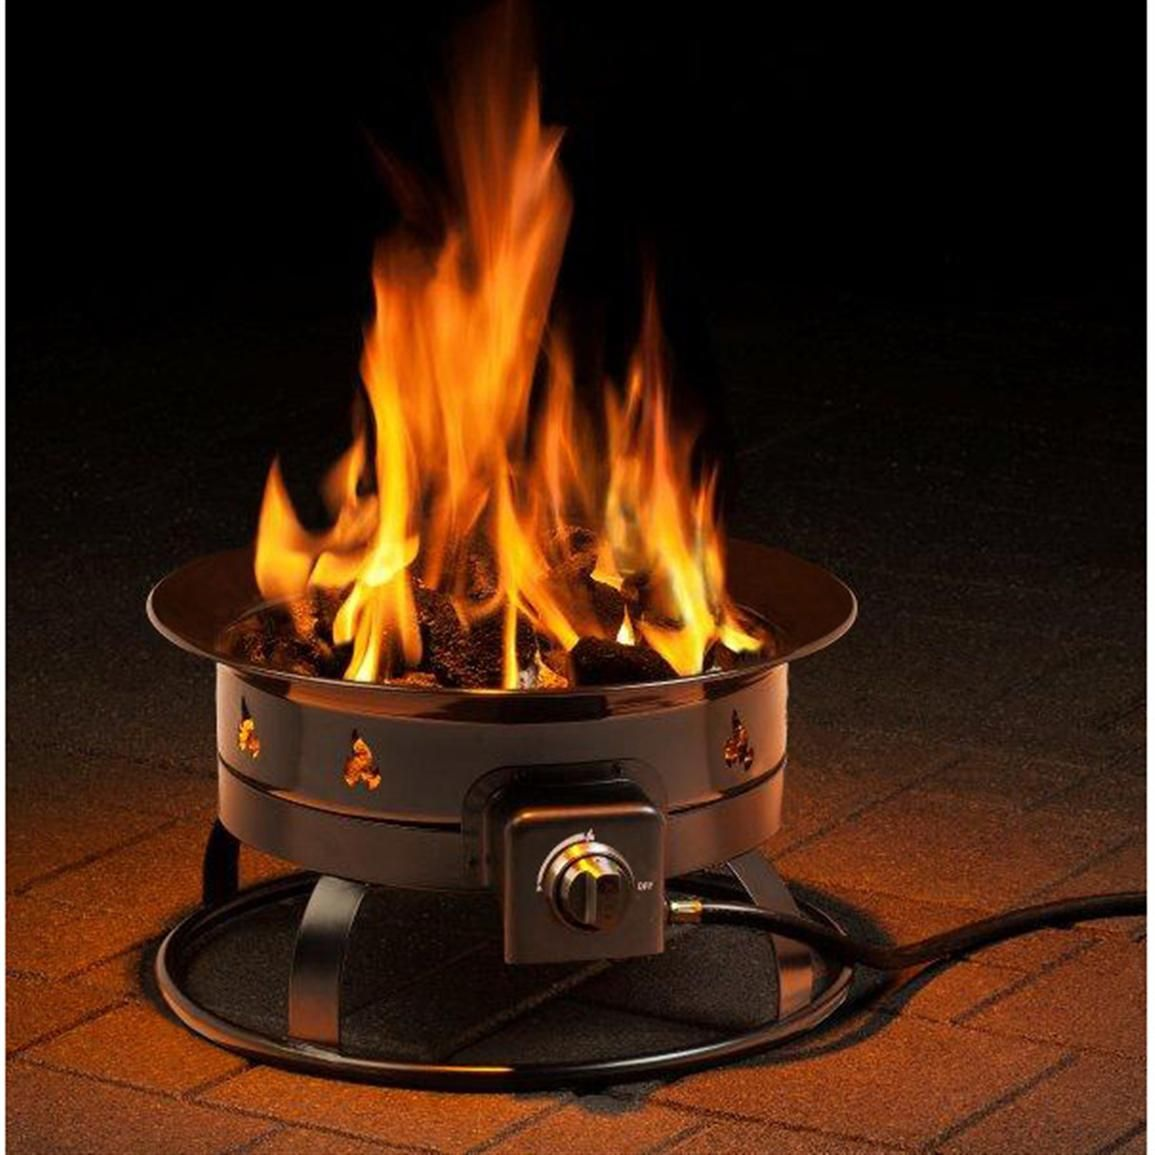 Cool Patio Gadgets That Make Summer That Much Sweeter Portable Propane Fire Pit Camping Fire Pit Outdoor Propane Fire Pit